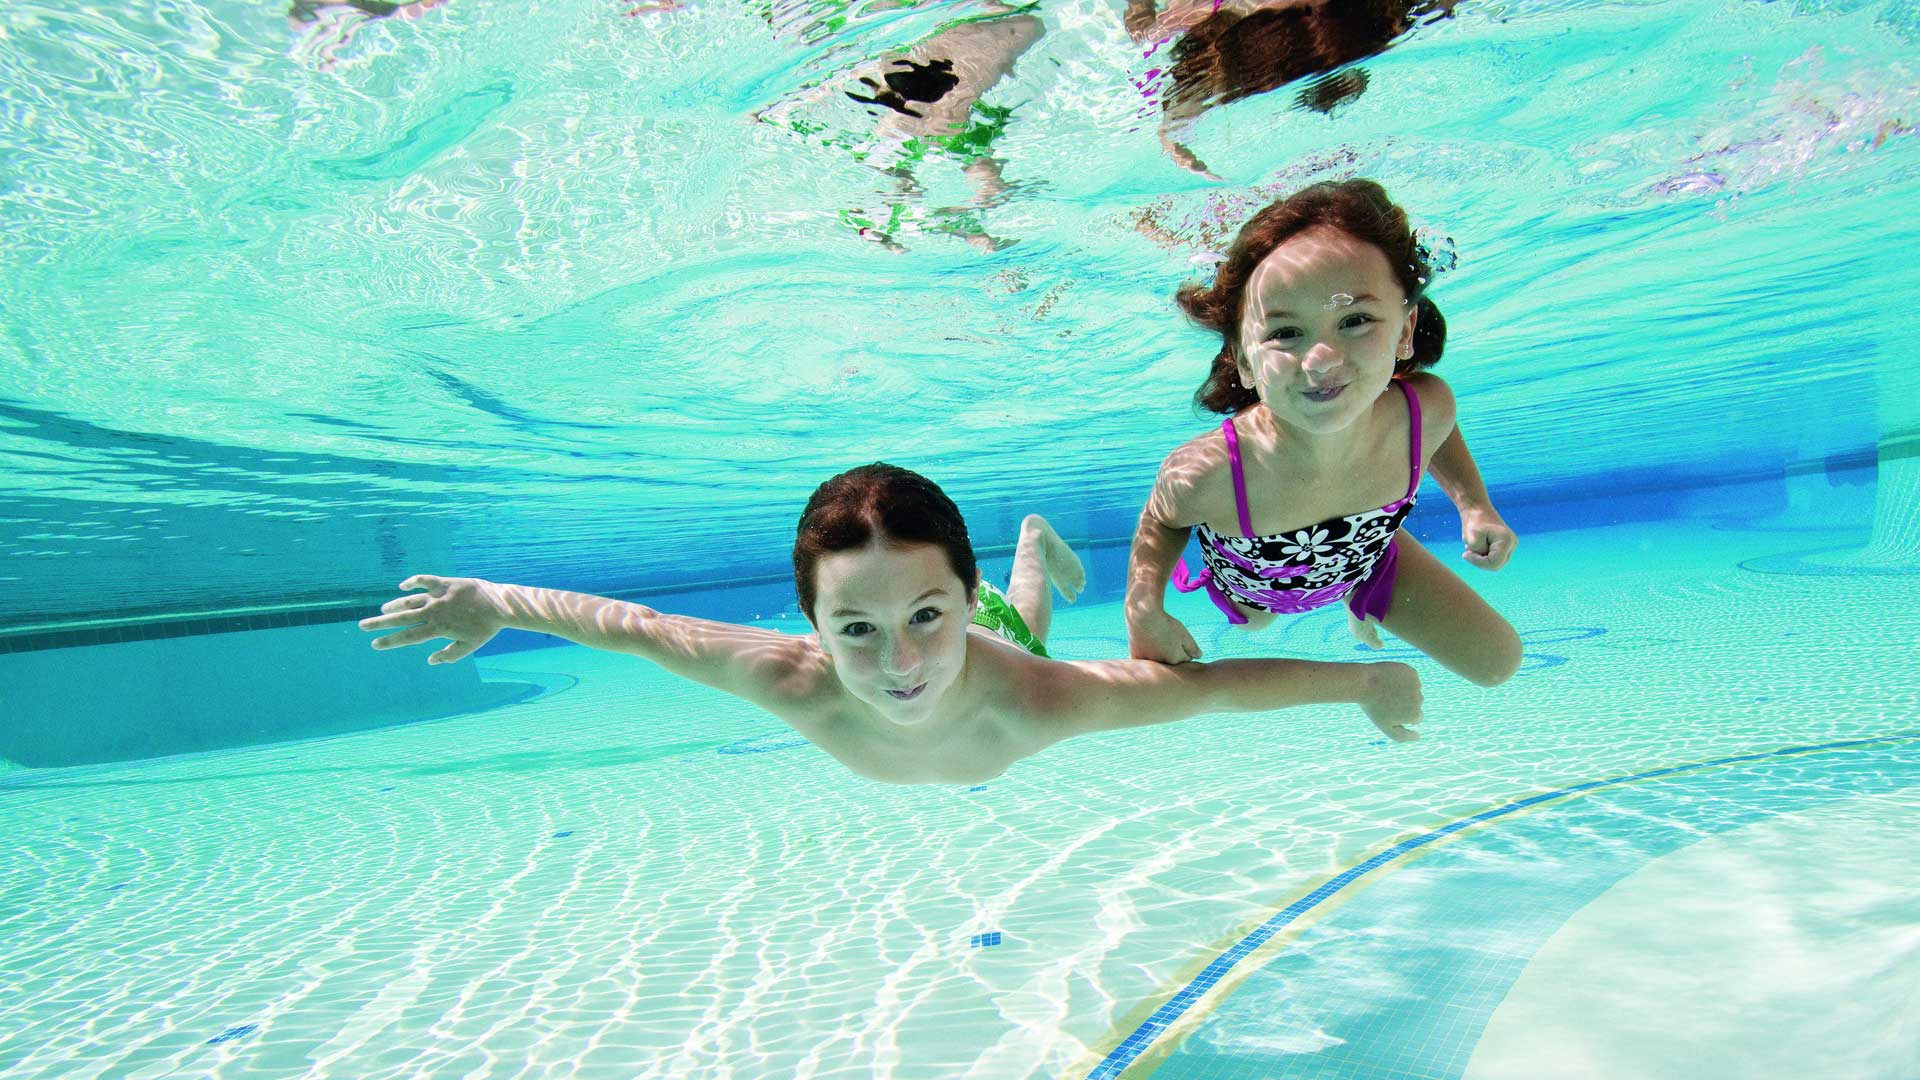 Kids in swimming pool wallpaper wallpapersafari for Swimming pool images